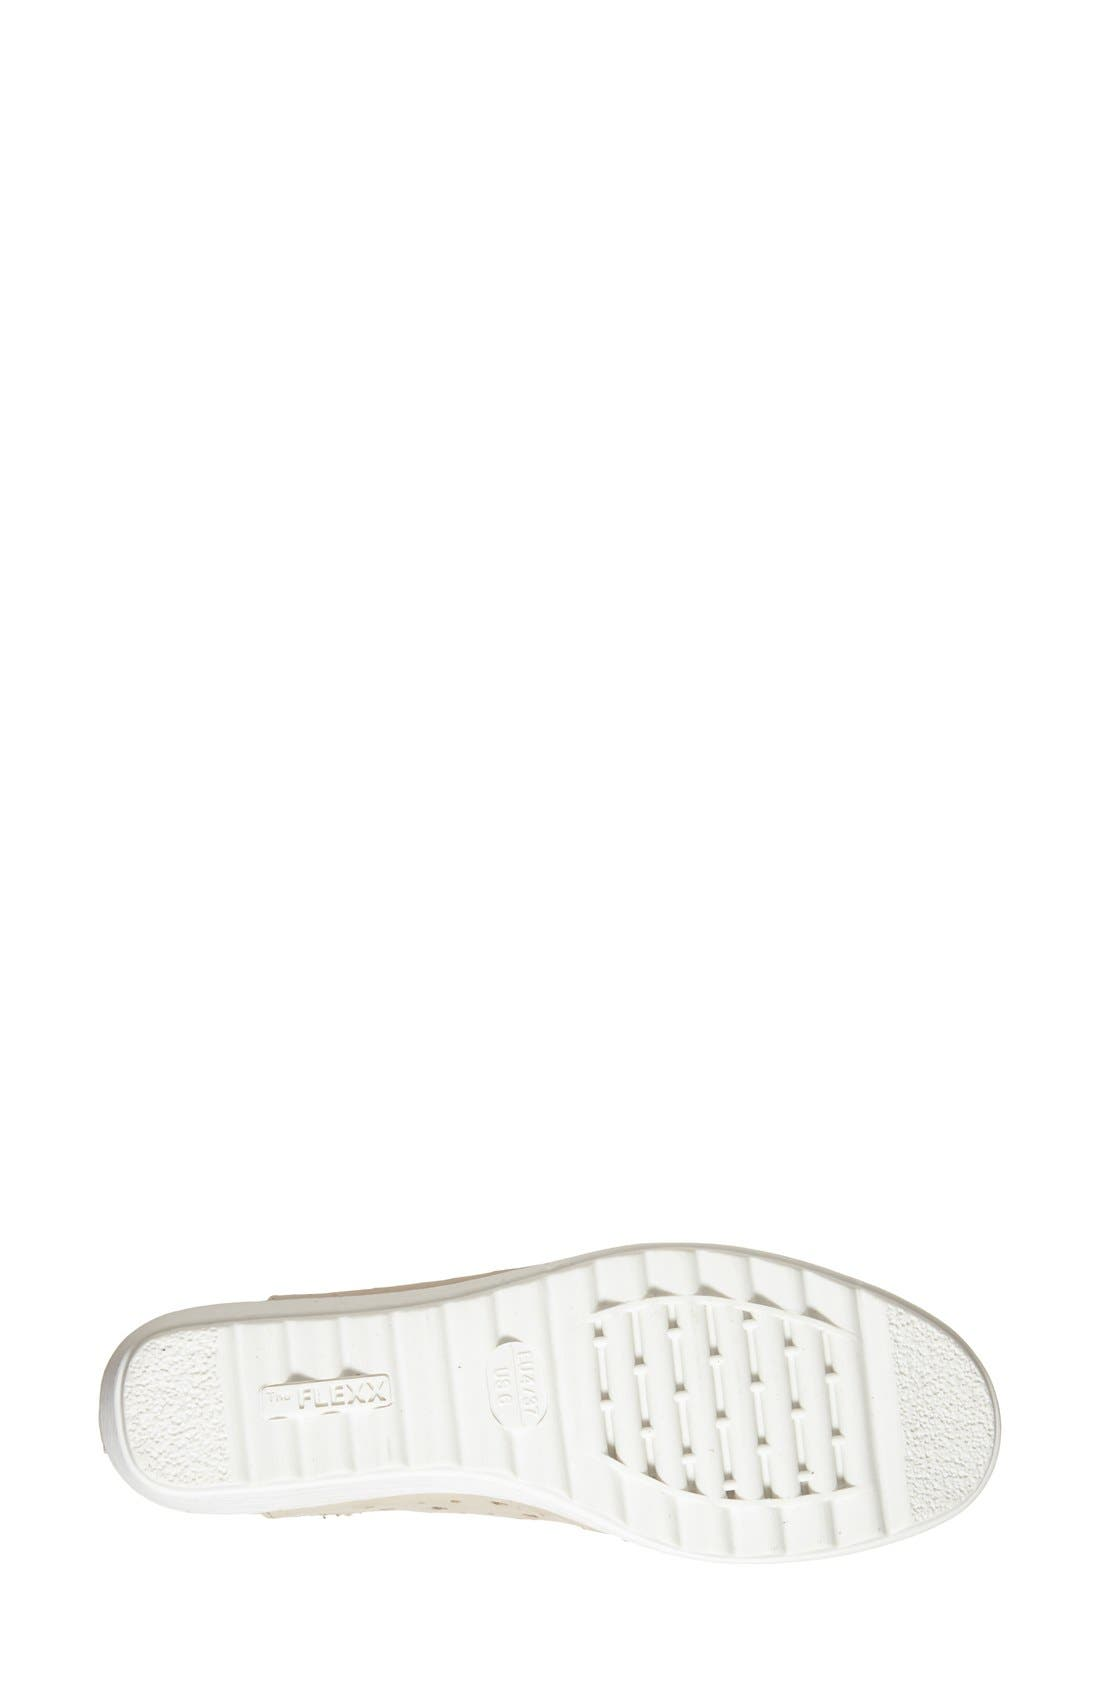 Run Crazy Too Perforated Wedge Sneaker,                             Alternate thumbnail 38, color,